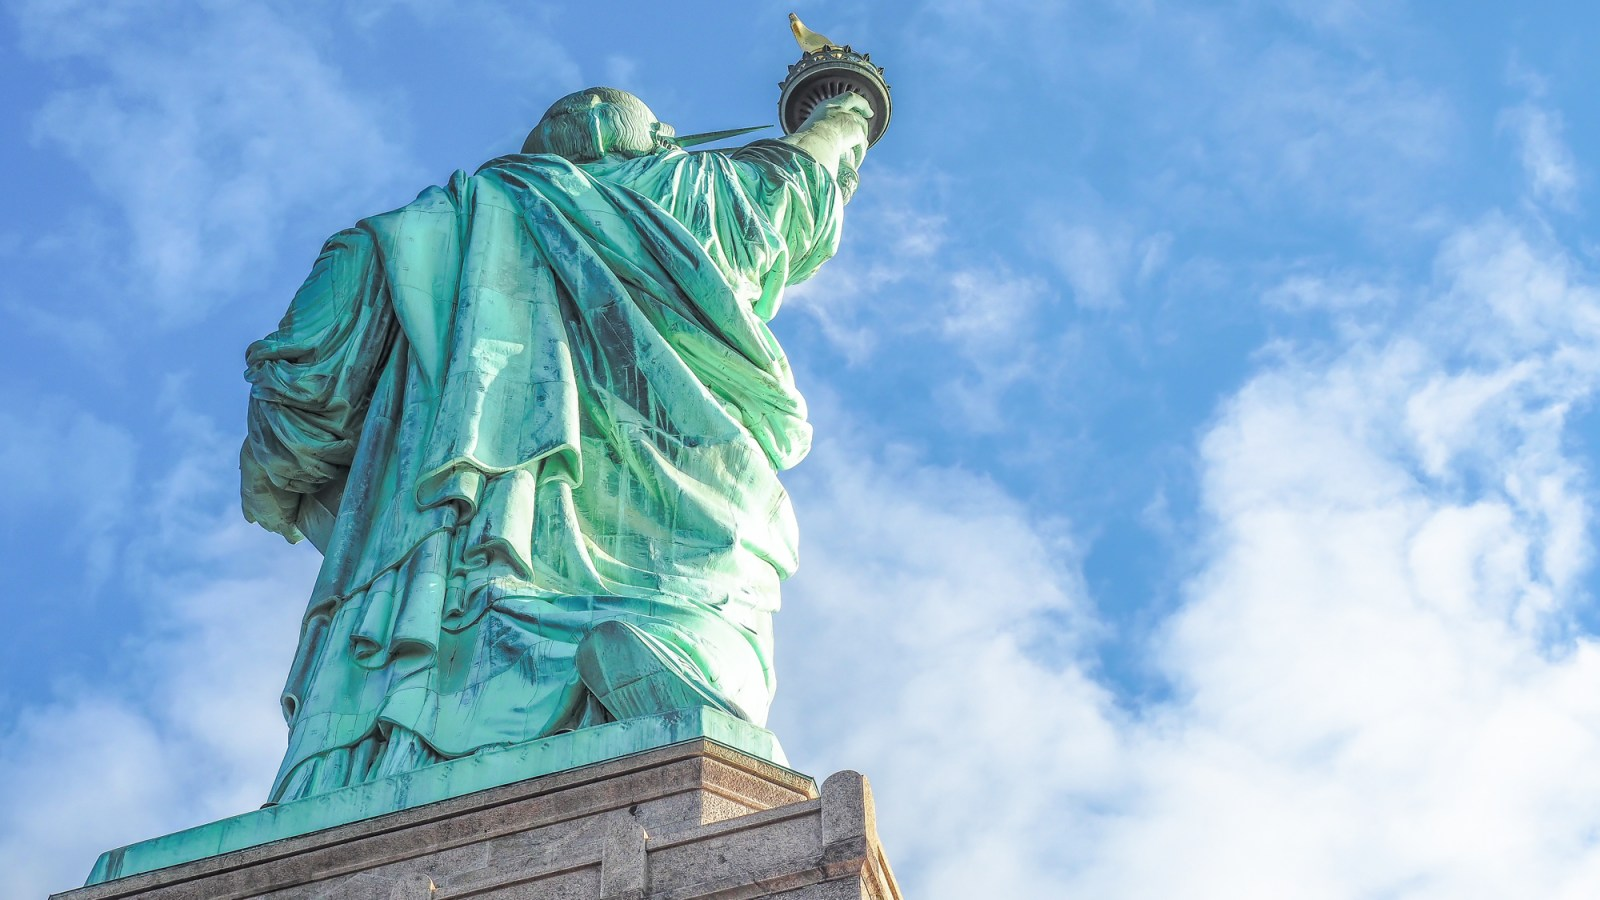 Do This, Not That // Visiting the Statue of Liberty | Dos and don'ts (and other helpful tips) for visiting the Statue of Liberty in New York City, USA.